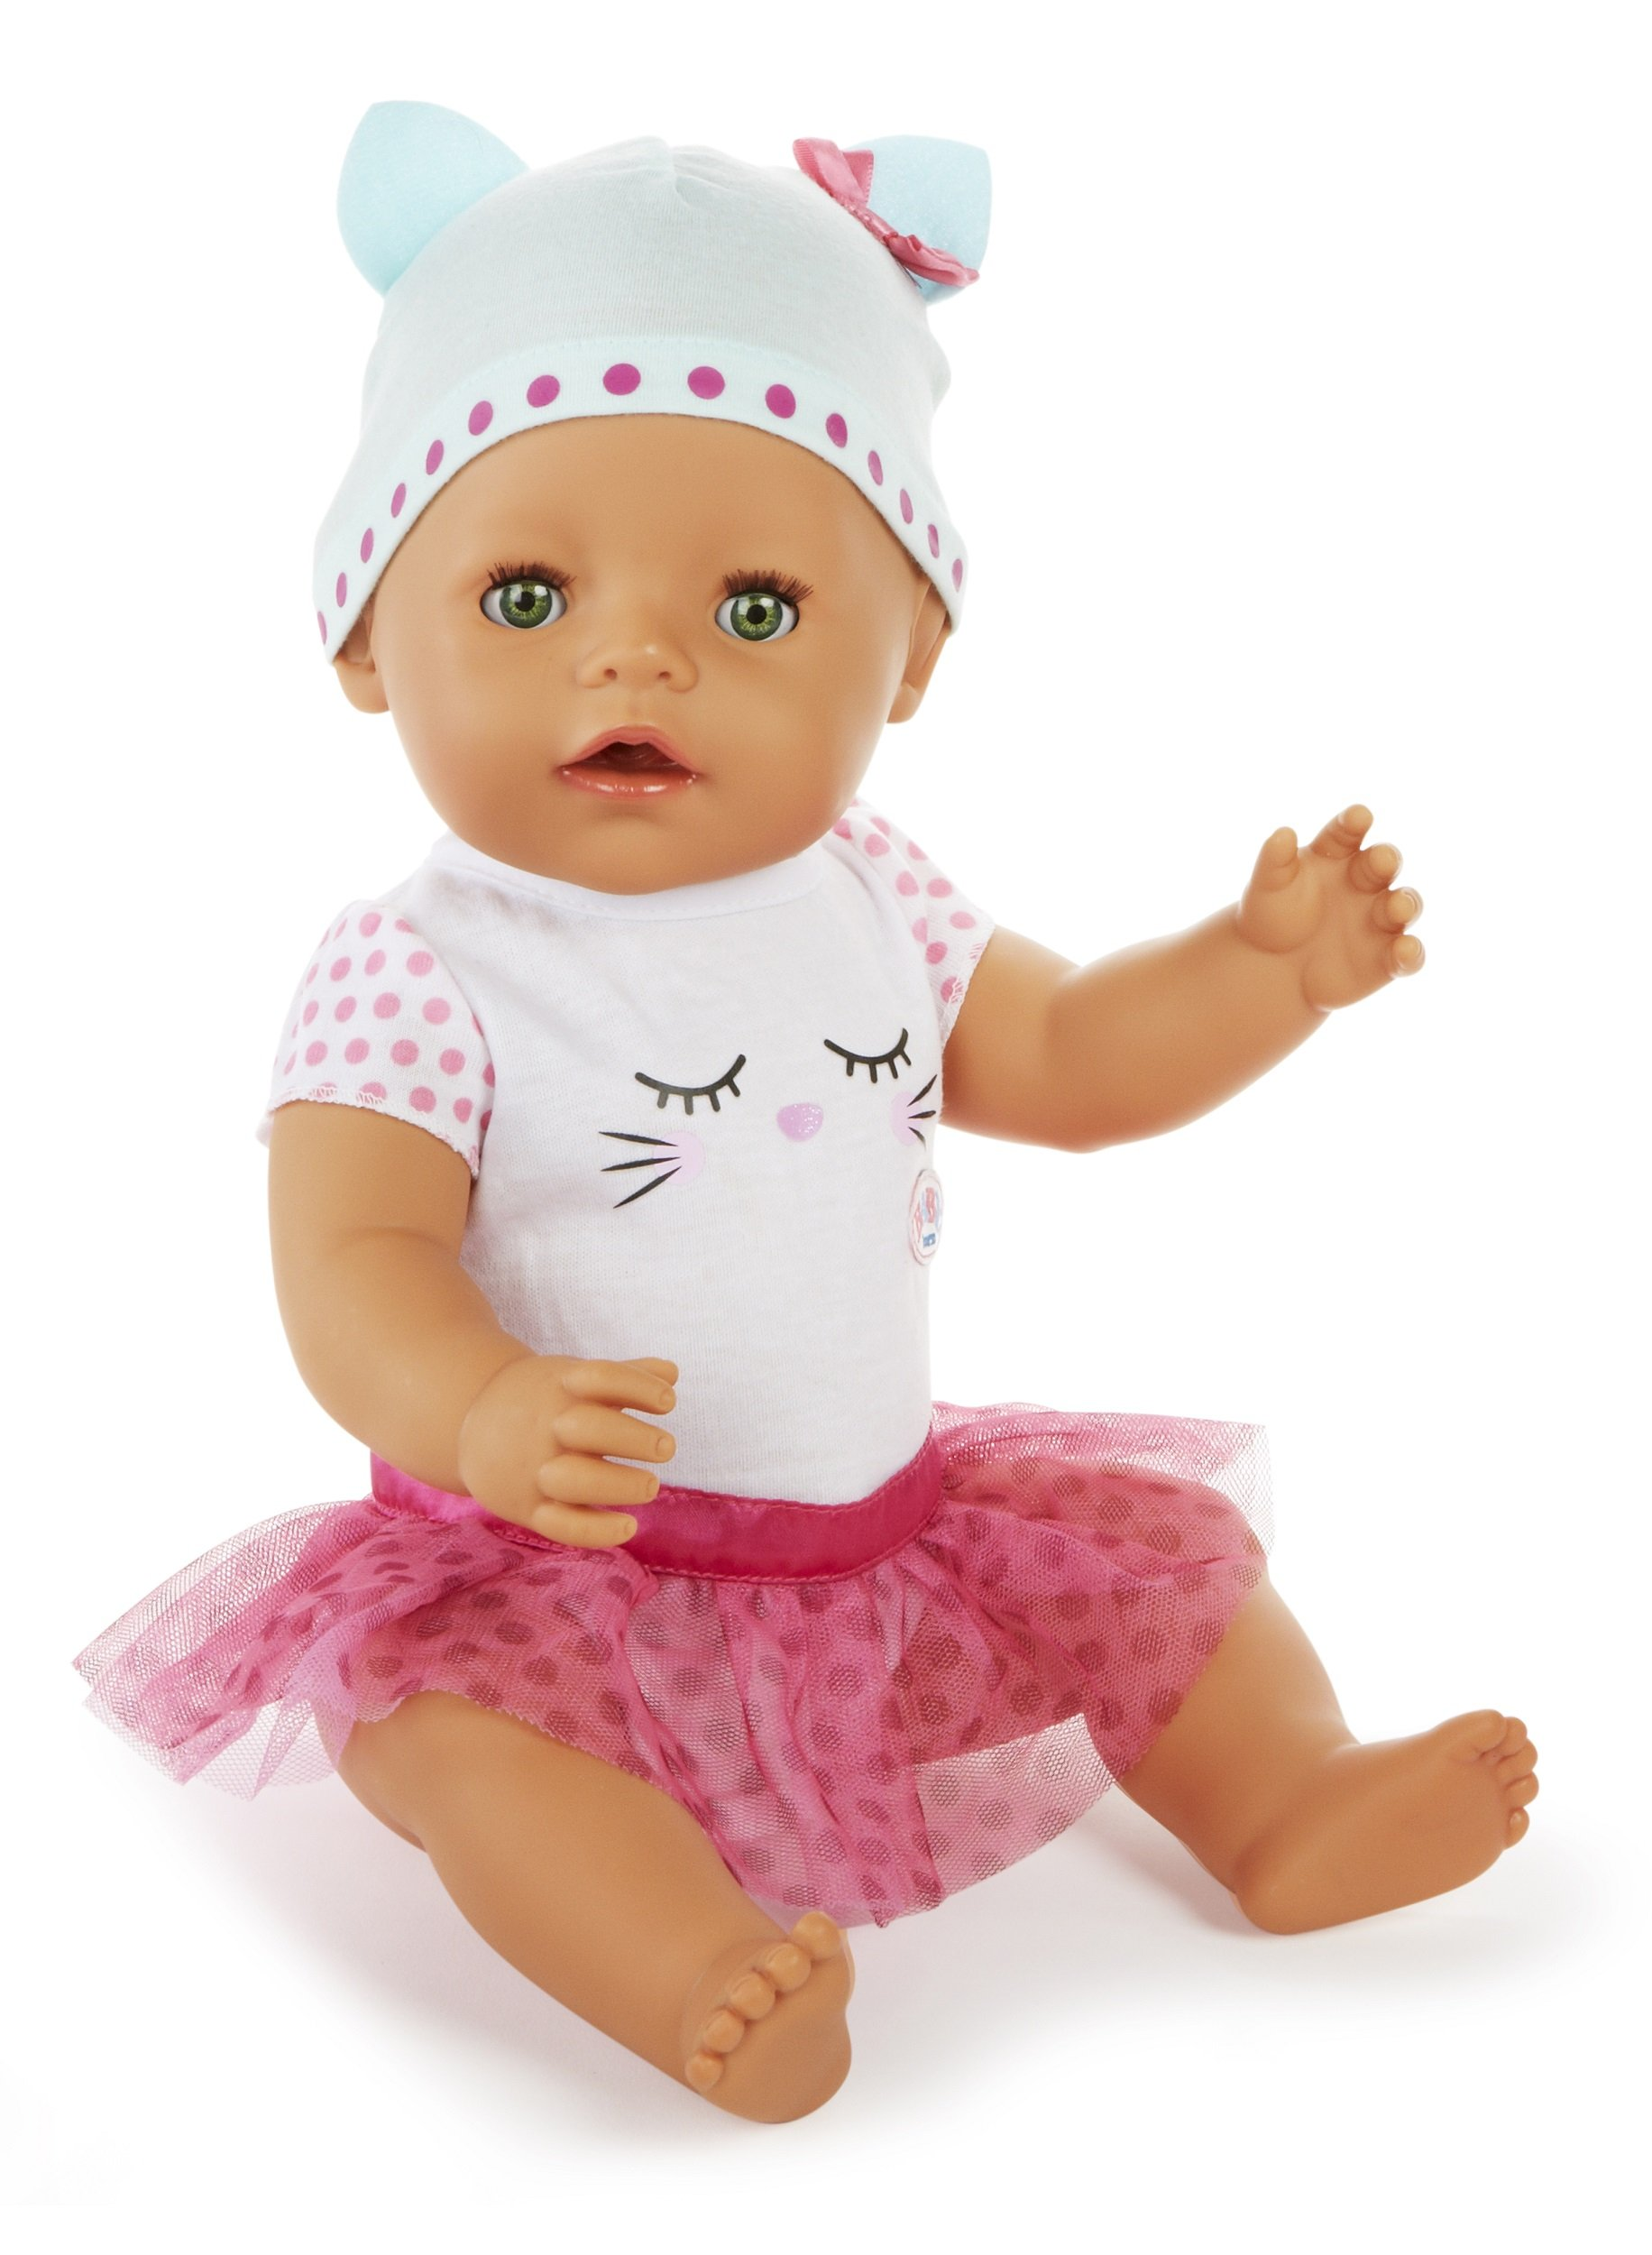 Baby Born Interactive Doll Green Eyes Toymamashop